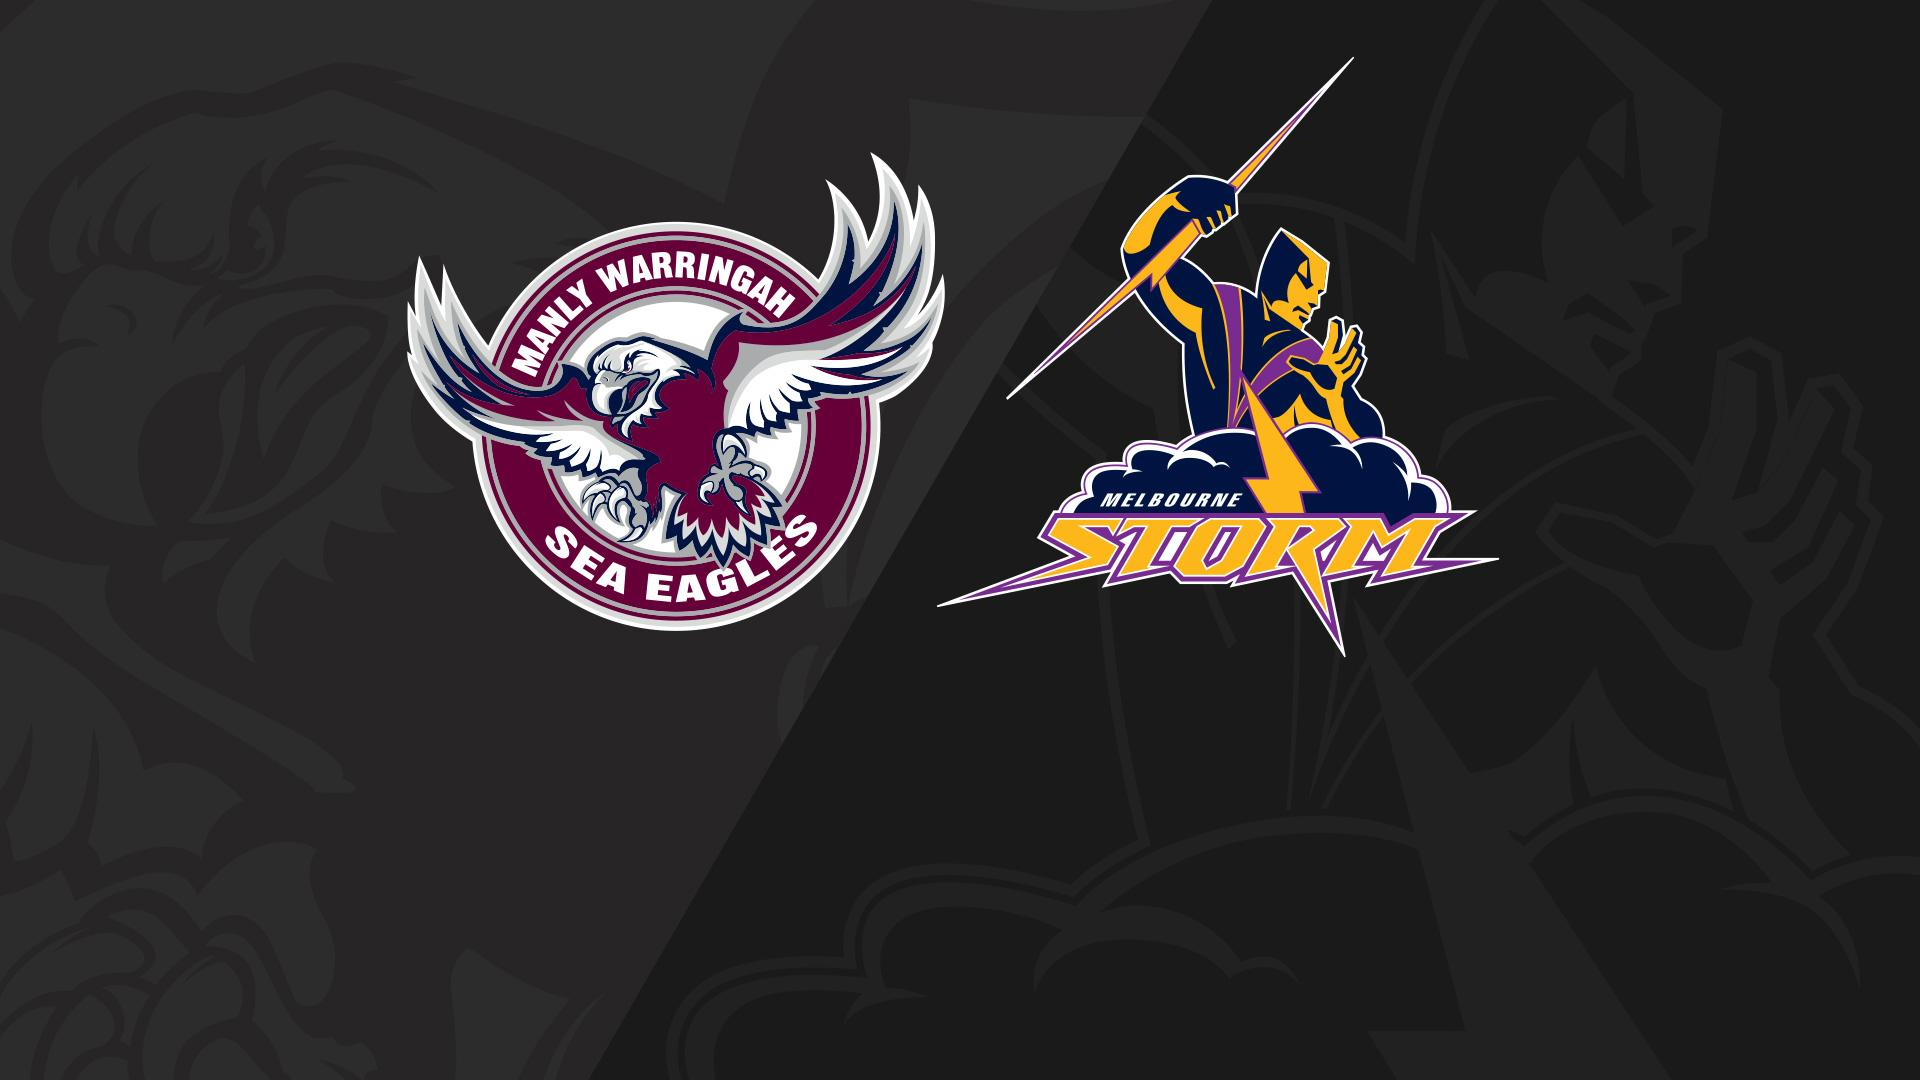 Full Match Replay: Sea Eagles v Storm - Round 18, 2018